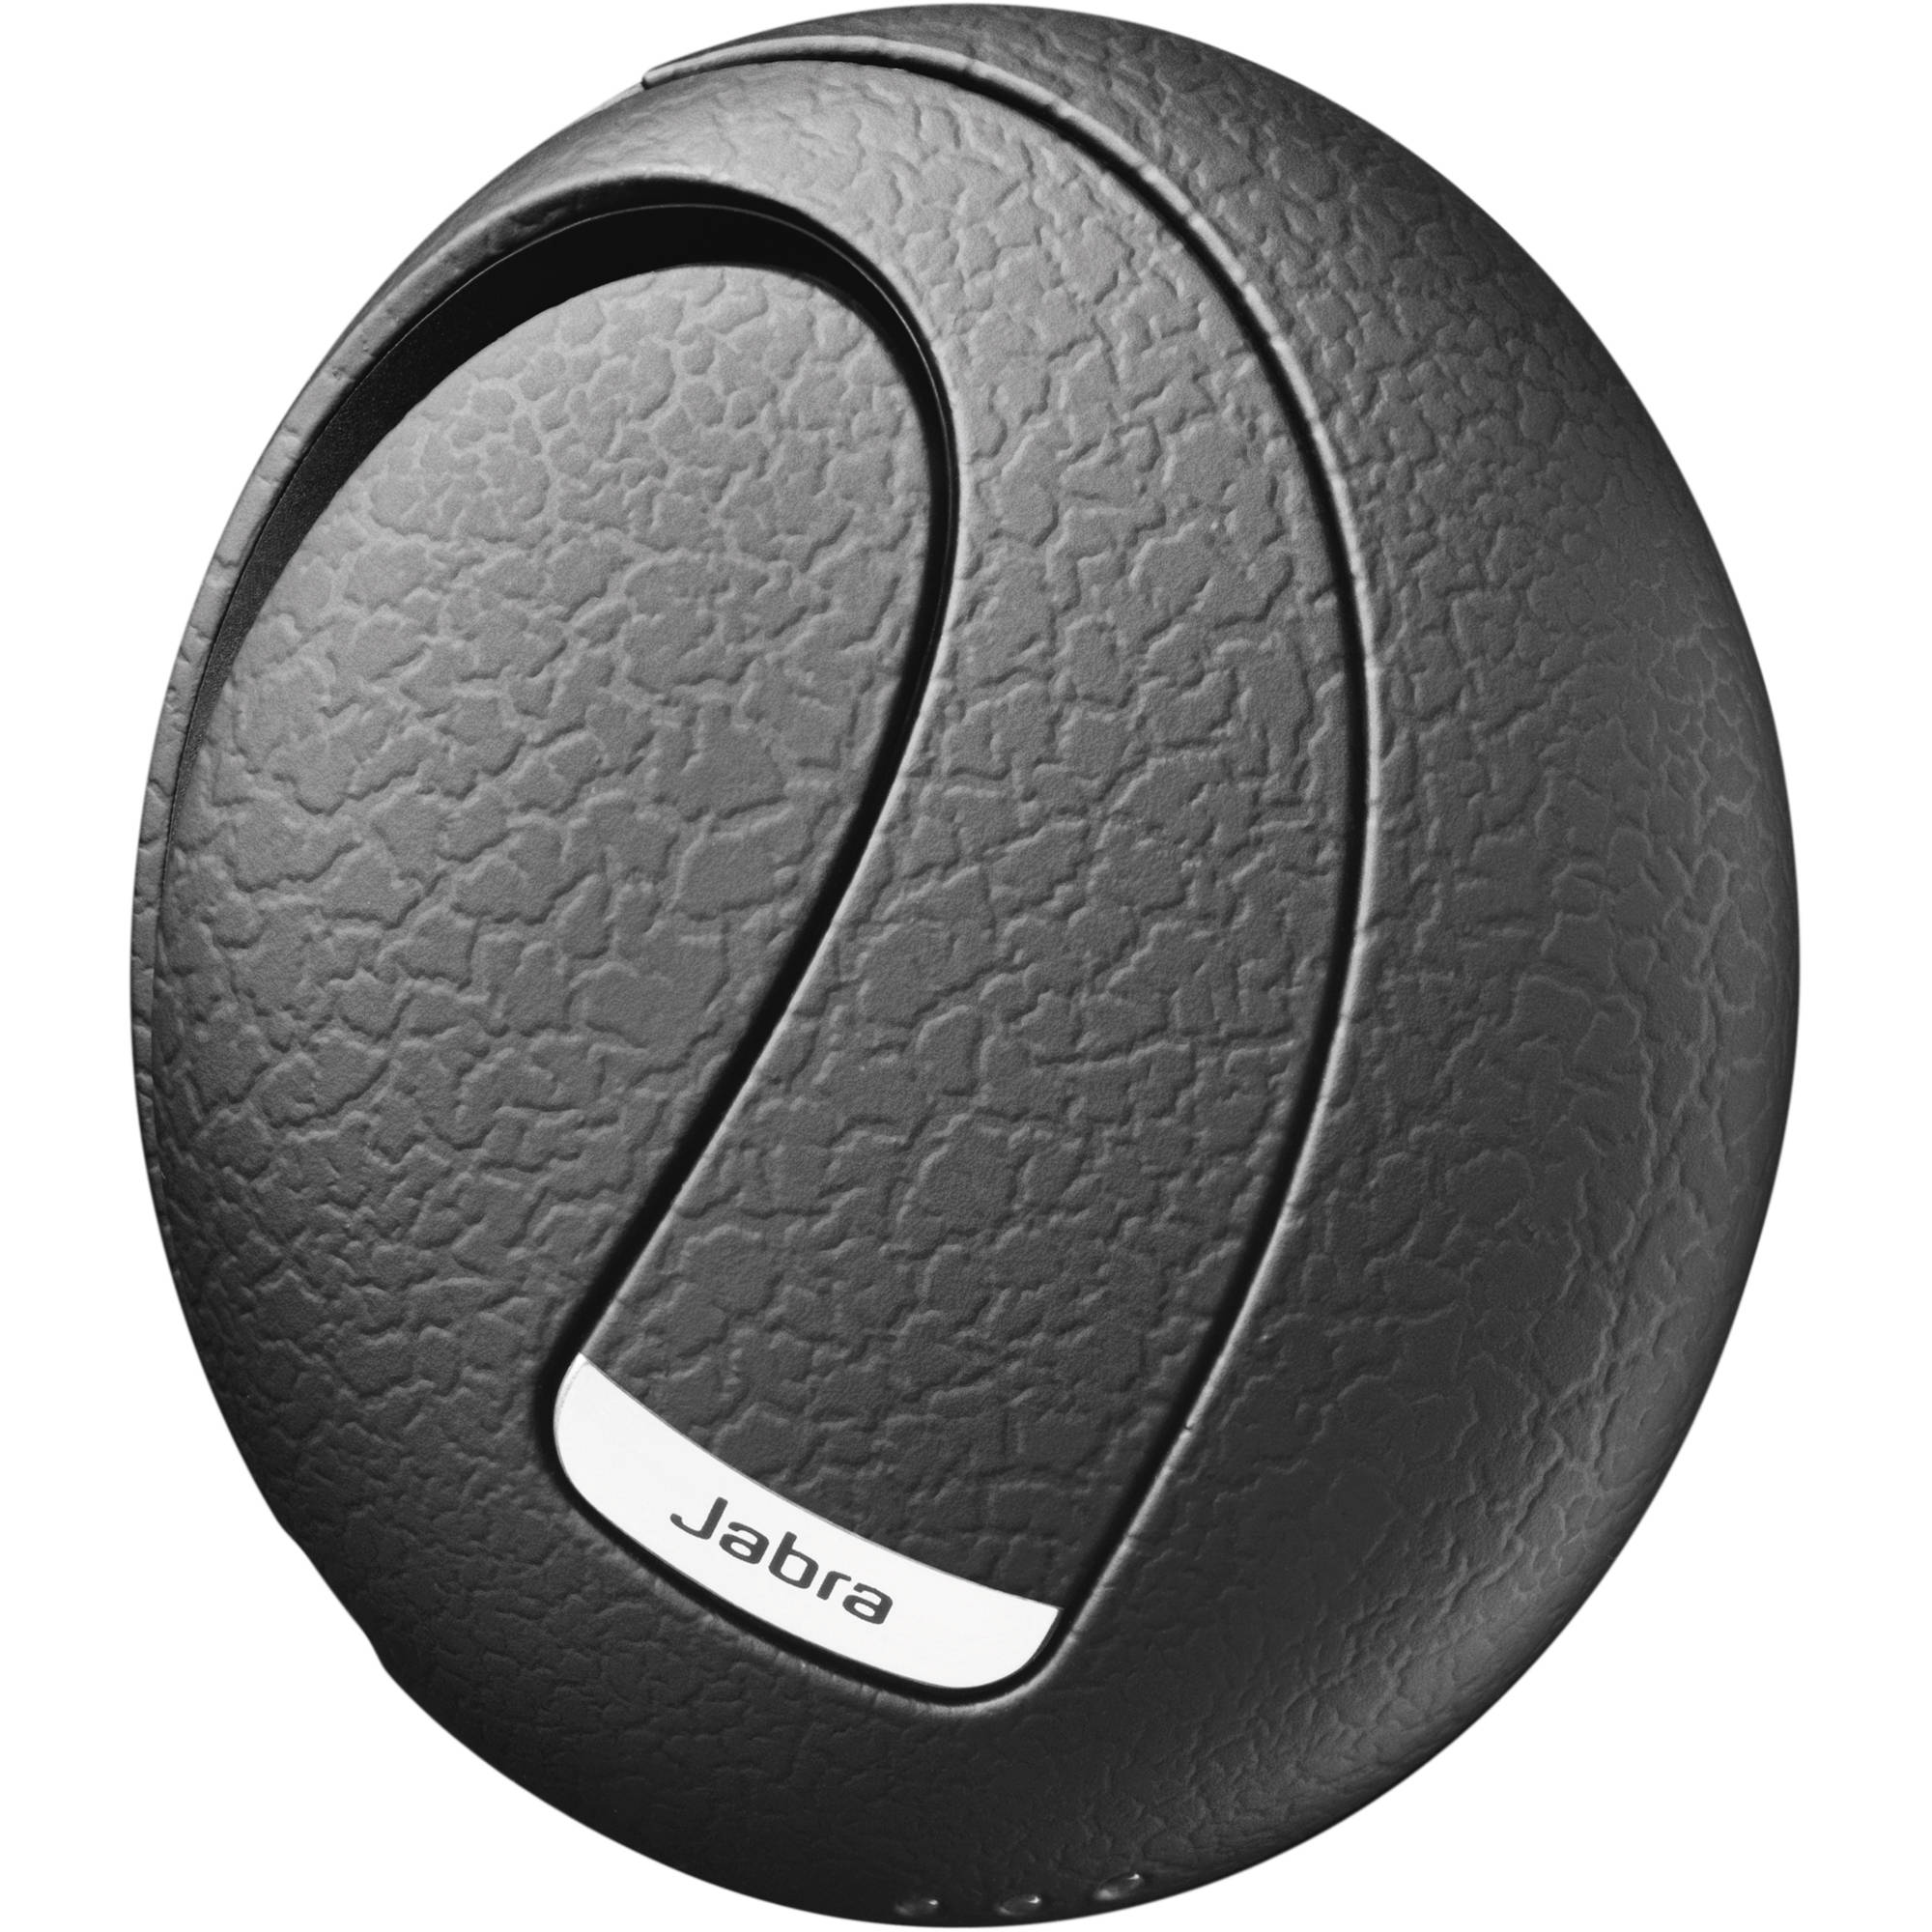 Bluetooth Headset Jabra Stone2: Jabra Stone2 Bluetooth Headset And Portable 100-99310000